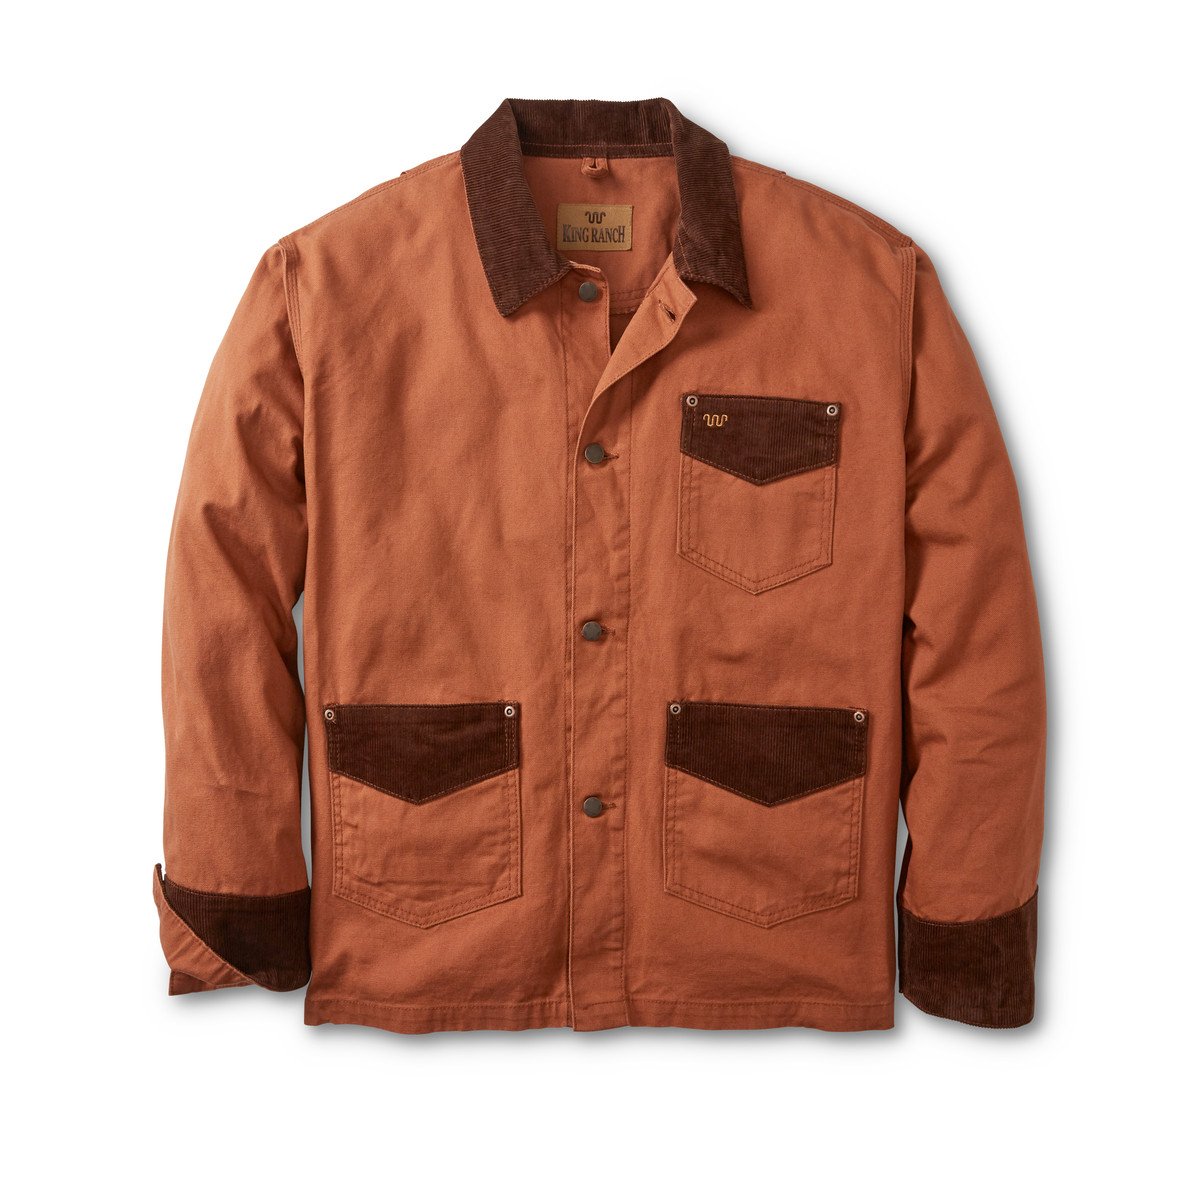 Kineno jacket is rugged cotton canvas inspired by the original fabric that sheltered westward bound wagon trains